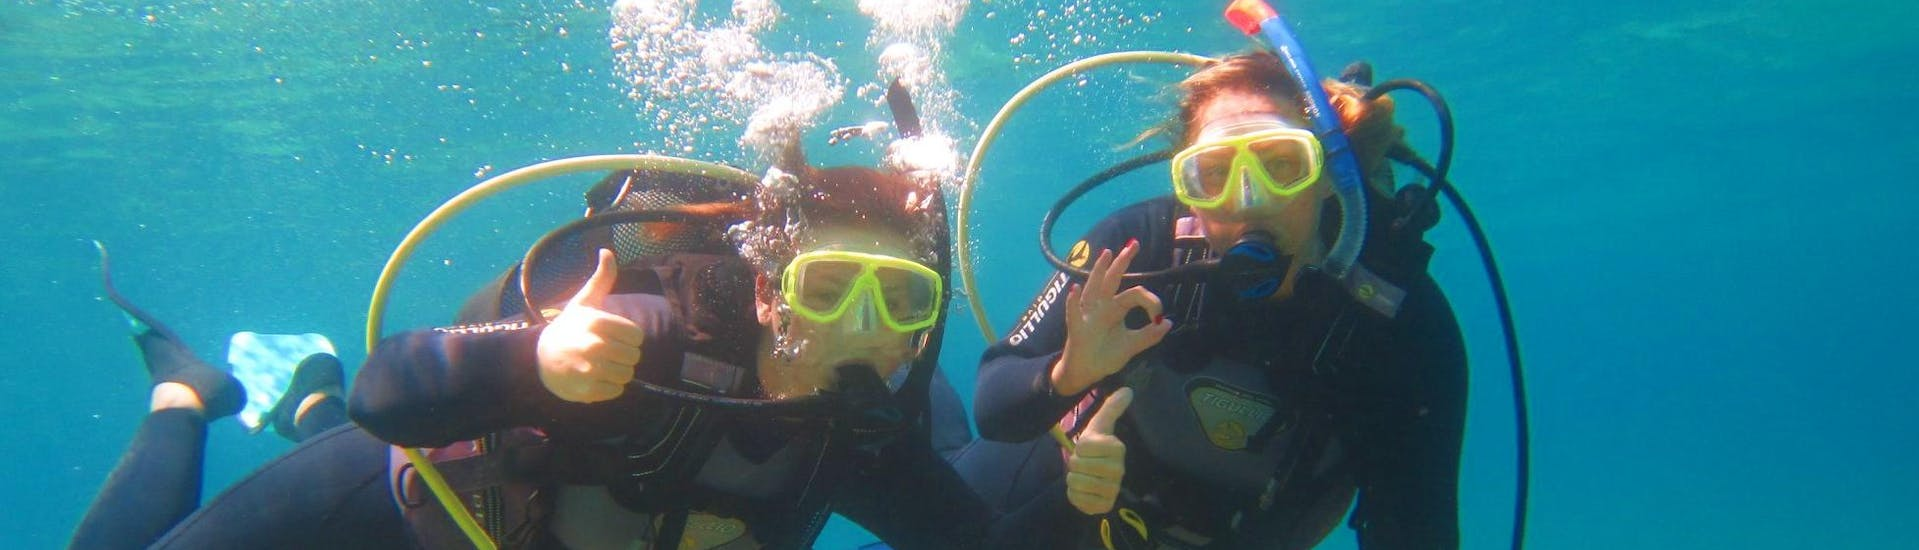 Two friends are exploring Corfu's underwater world during their CMAS* Scuba Diving Course for Beginners with Hercules Marine Activities Corfu.